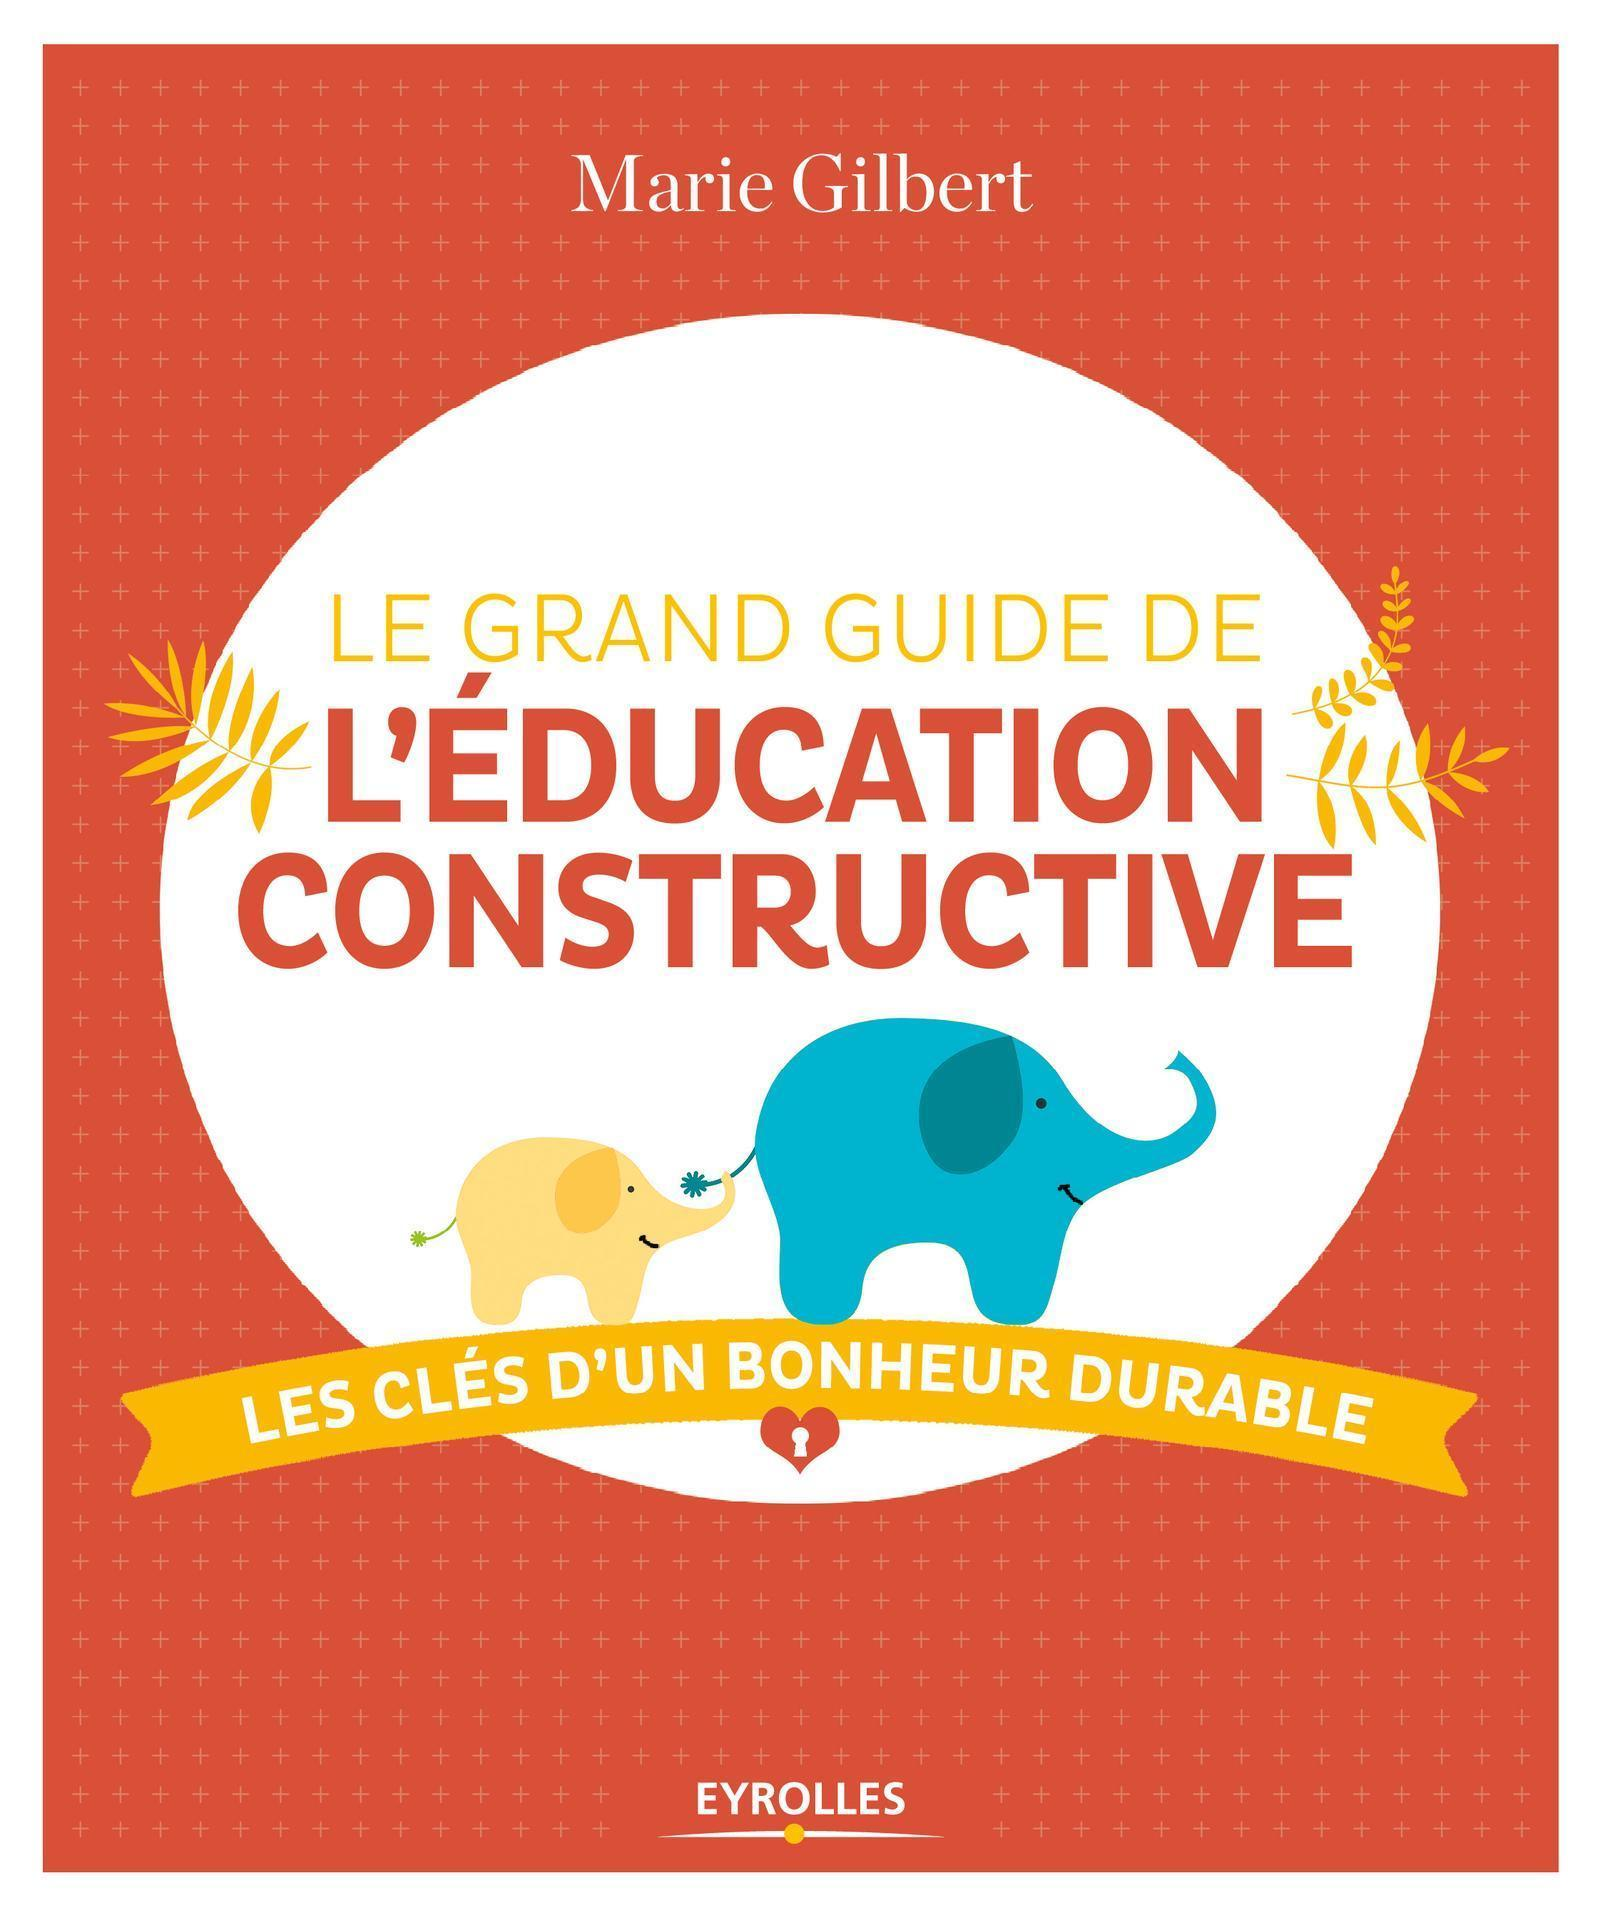 LE GRAND GUIDE DE L EDUCATION CONSTRUCTIVE - LES CLES D UN BONHEUR DURABLE